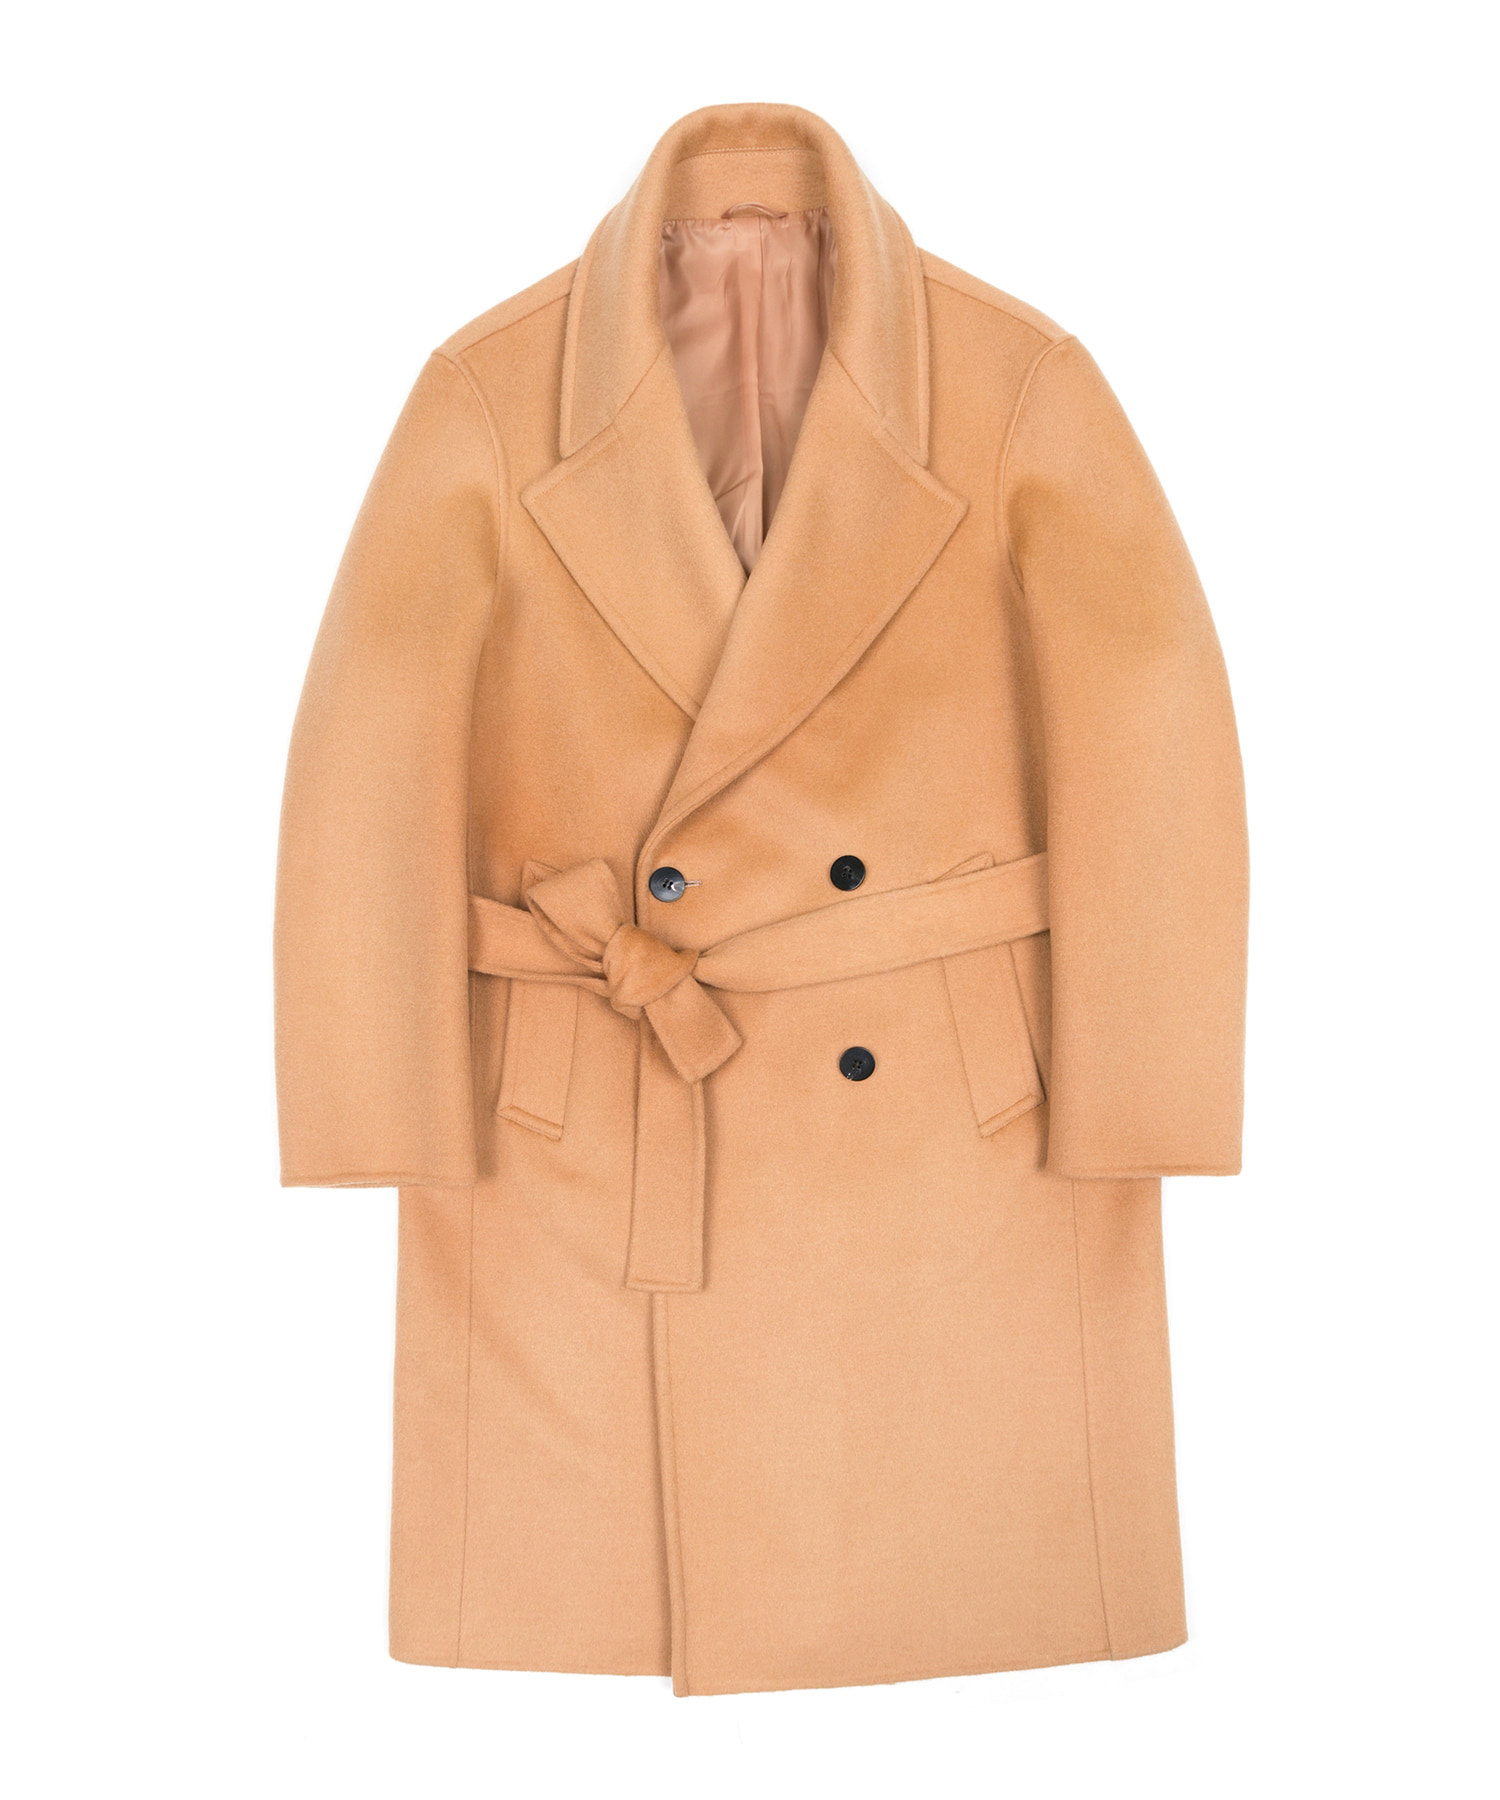 HANDMADE WOOL BREND BELTED DOUBLE COAT - BEIGE